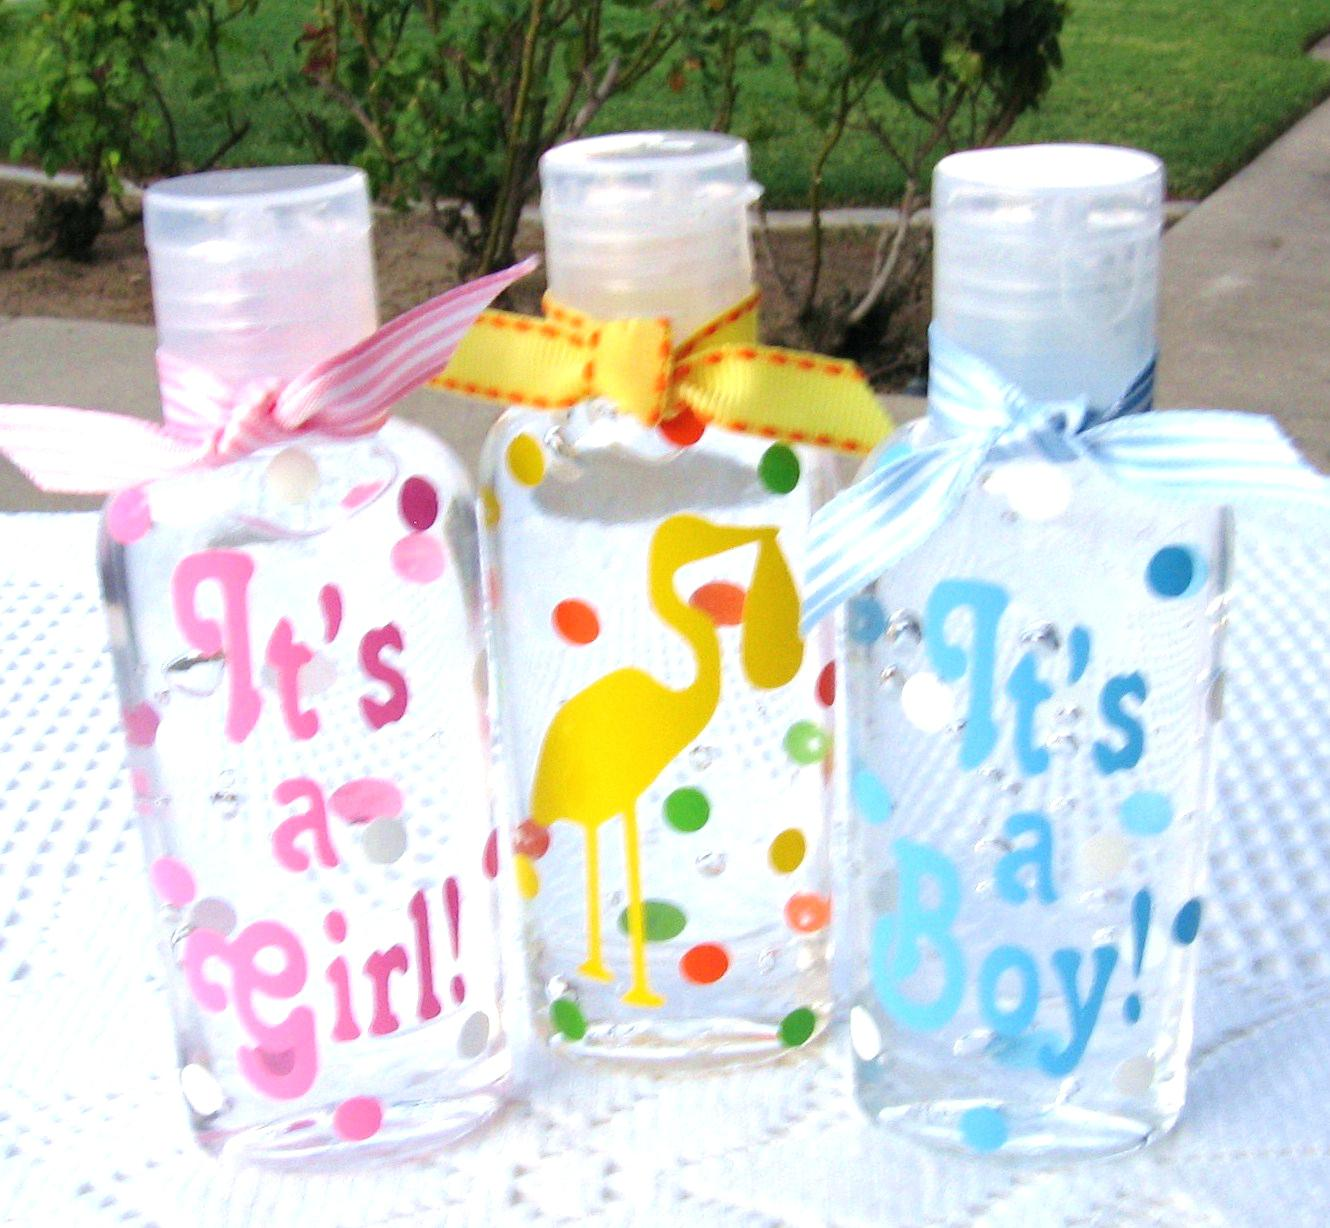 Full Size of Baby Shower:enamour Baby Shower Gifts For Guests Picture Ideas Baby Shower Gifts For Guests Para Baby Shower Baby Shower Hostess Gifts Baby Shower Word Search Baby Shower Sayings Baby Shower Cakes Baby Shower Gift For Guest Twins Decorations Best Decoration Giftss